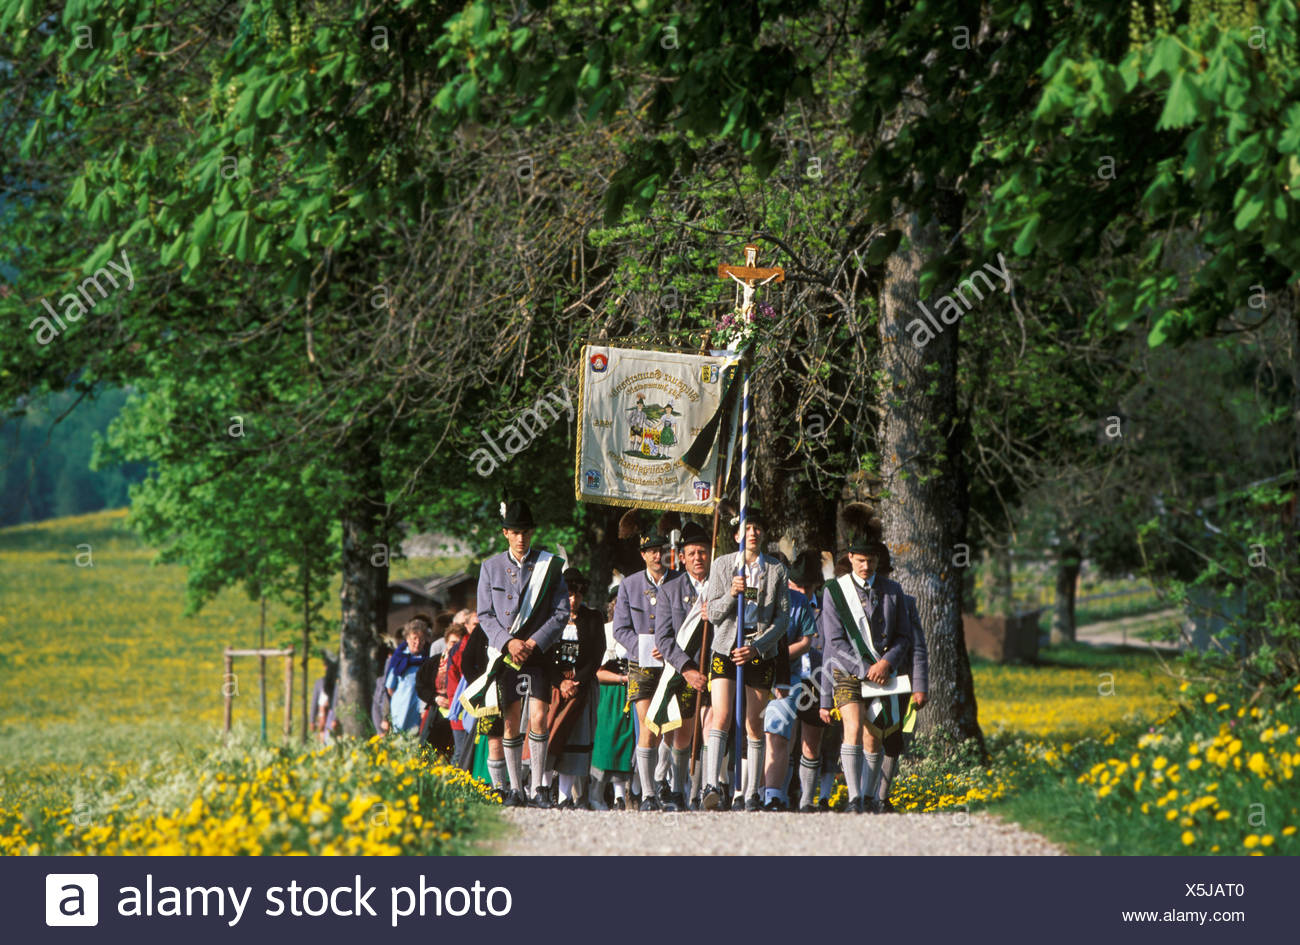 Traditional pilgrimage to Maria Trost during Pentecost, Nesselwang, East Allgaeu, Bavaria, Germany, Europe - Stock Image